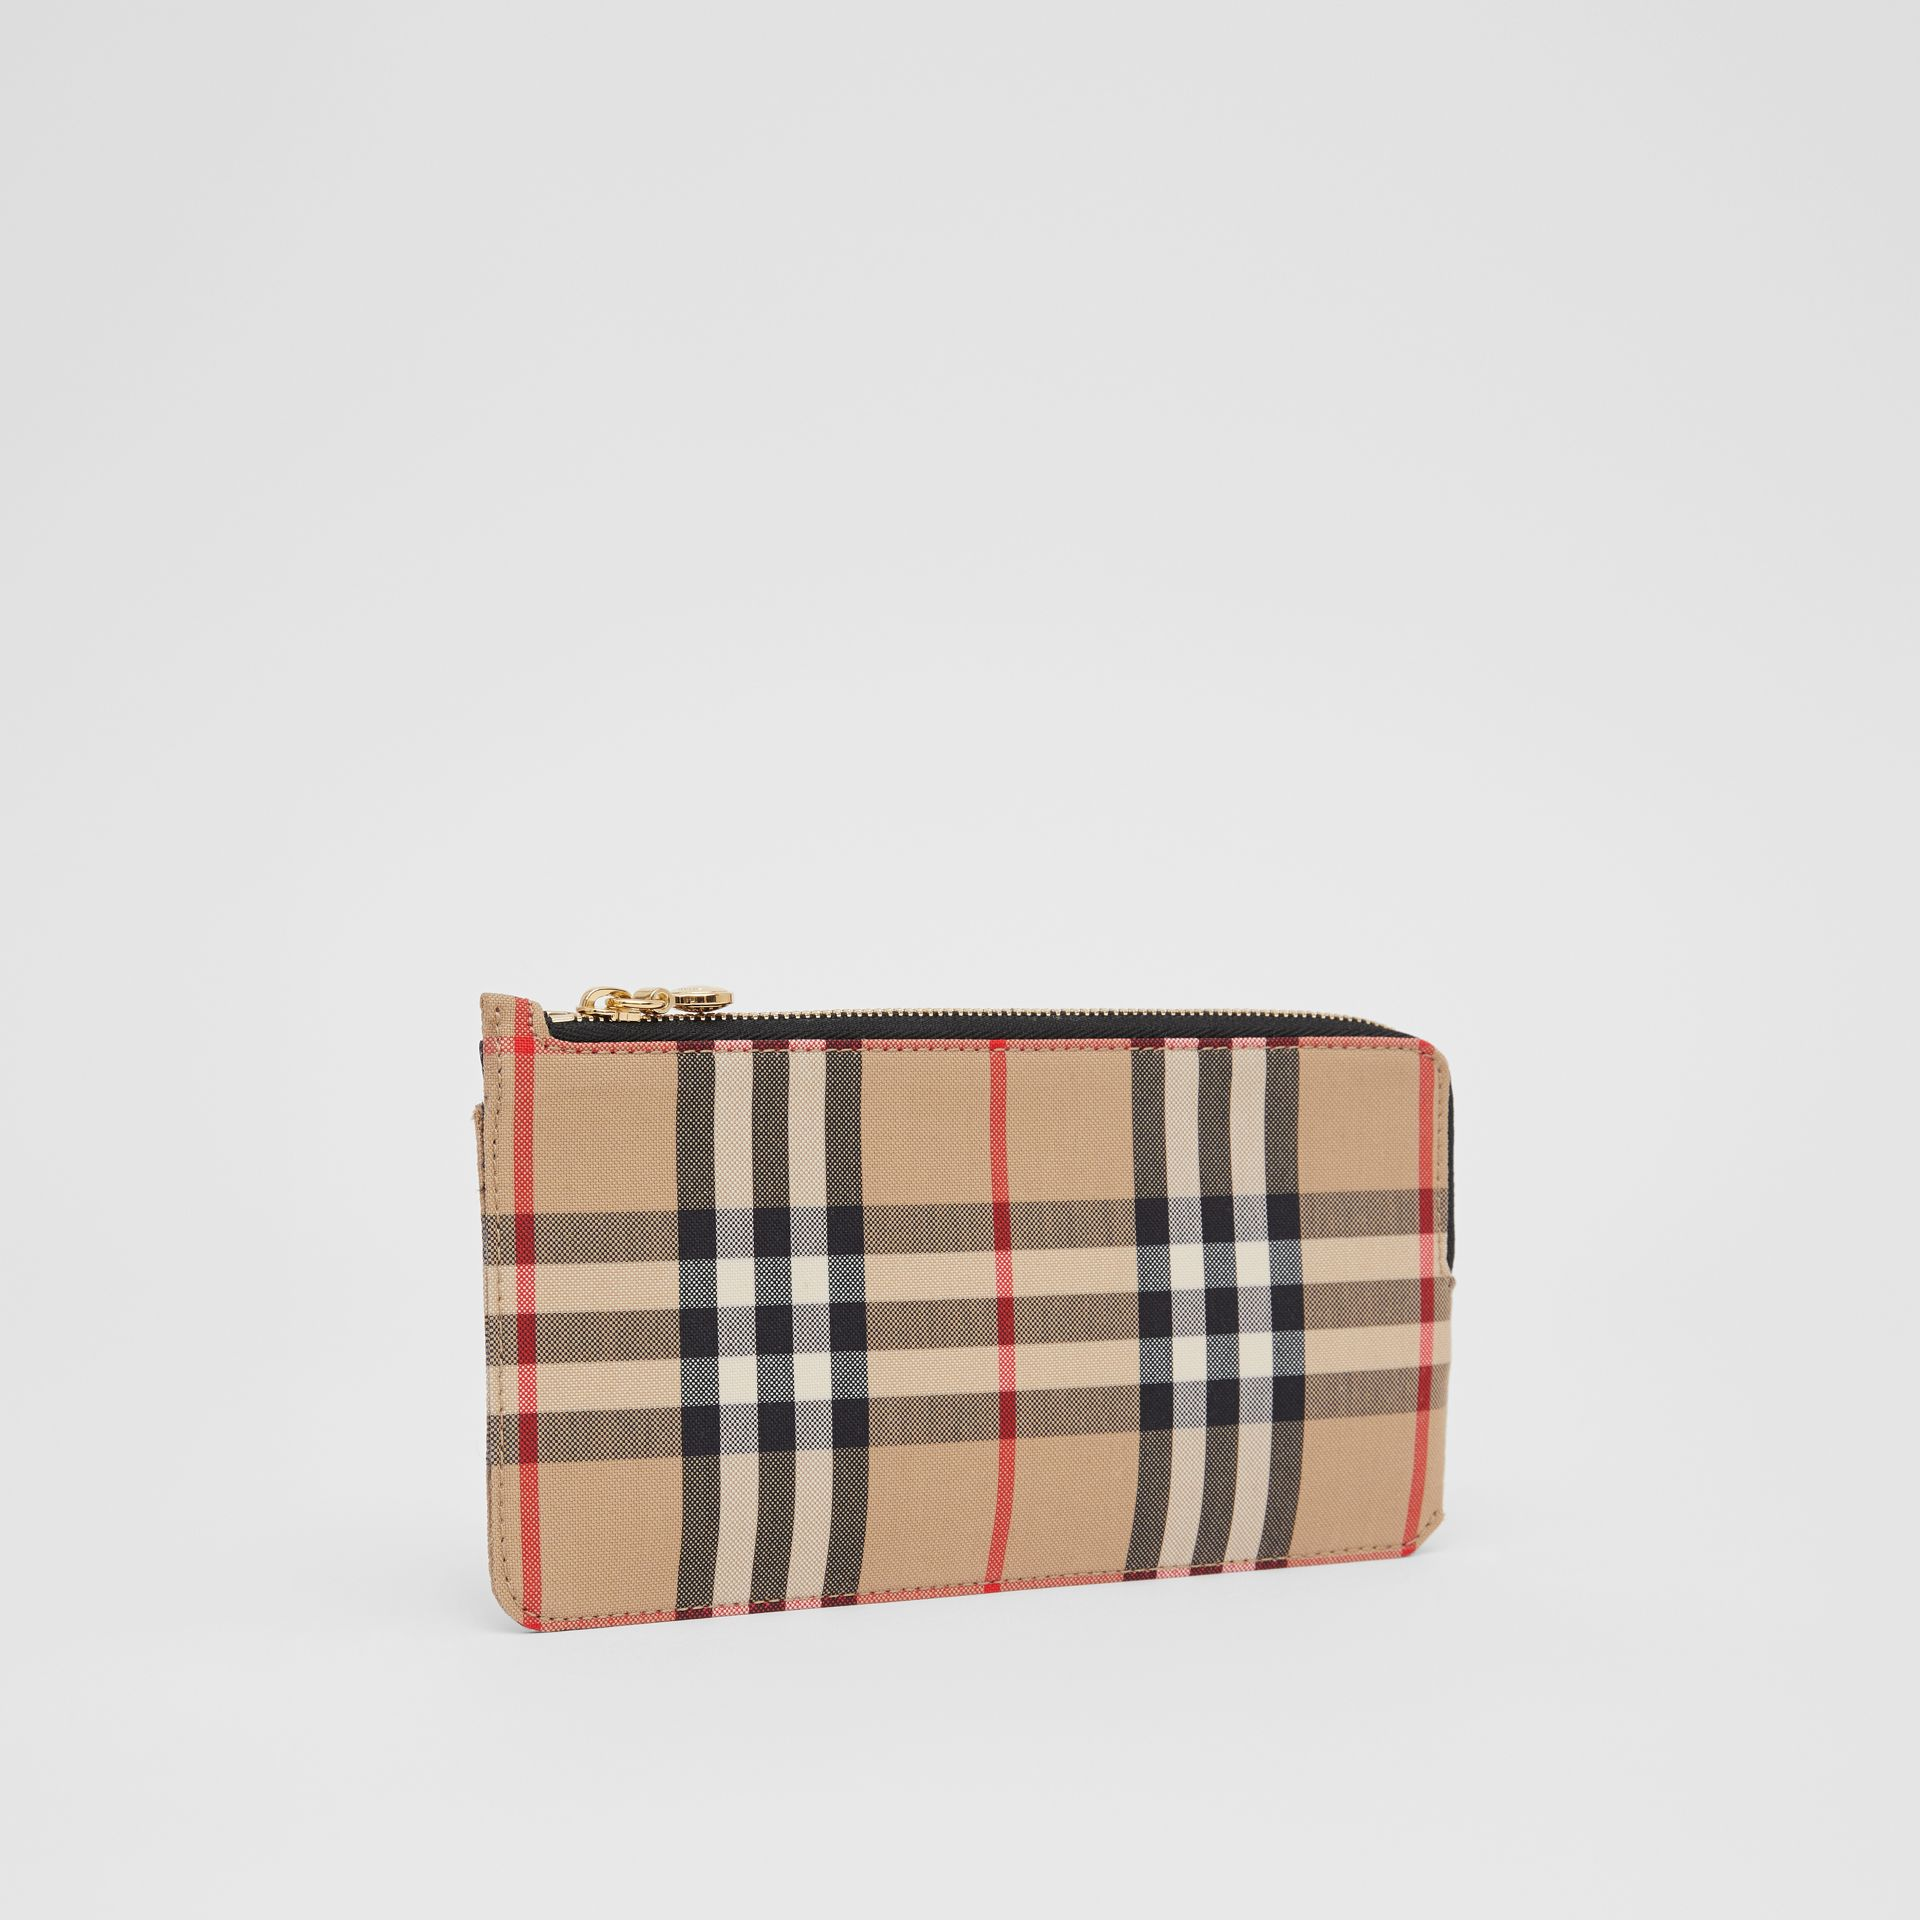 Vintage Check and Leather Phone Wallet in Black - Women | Burberry Hong Kong S.A.R - gallery image 3